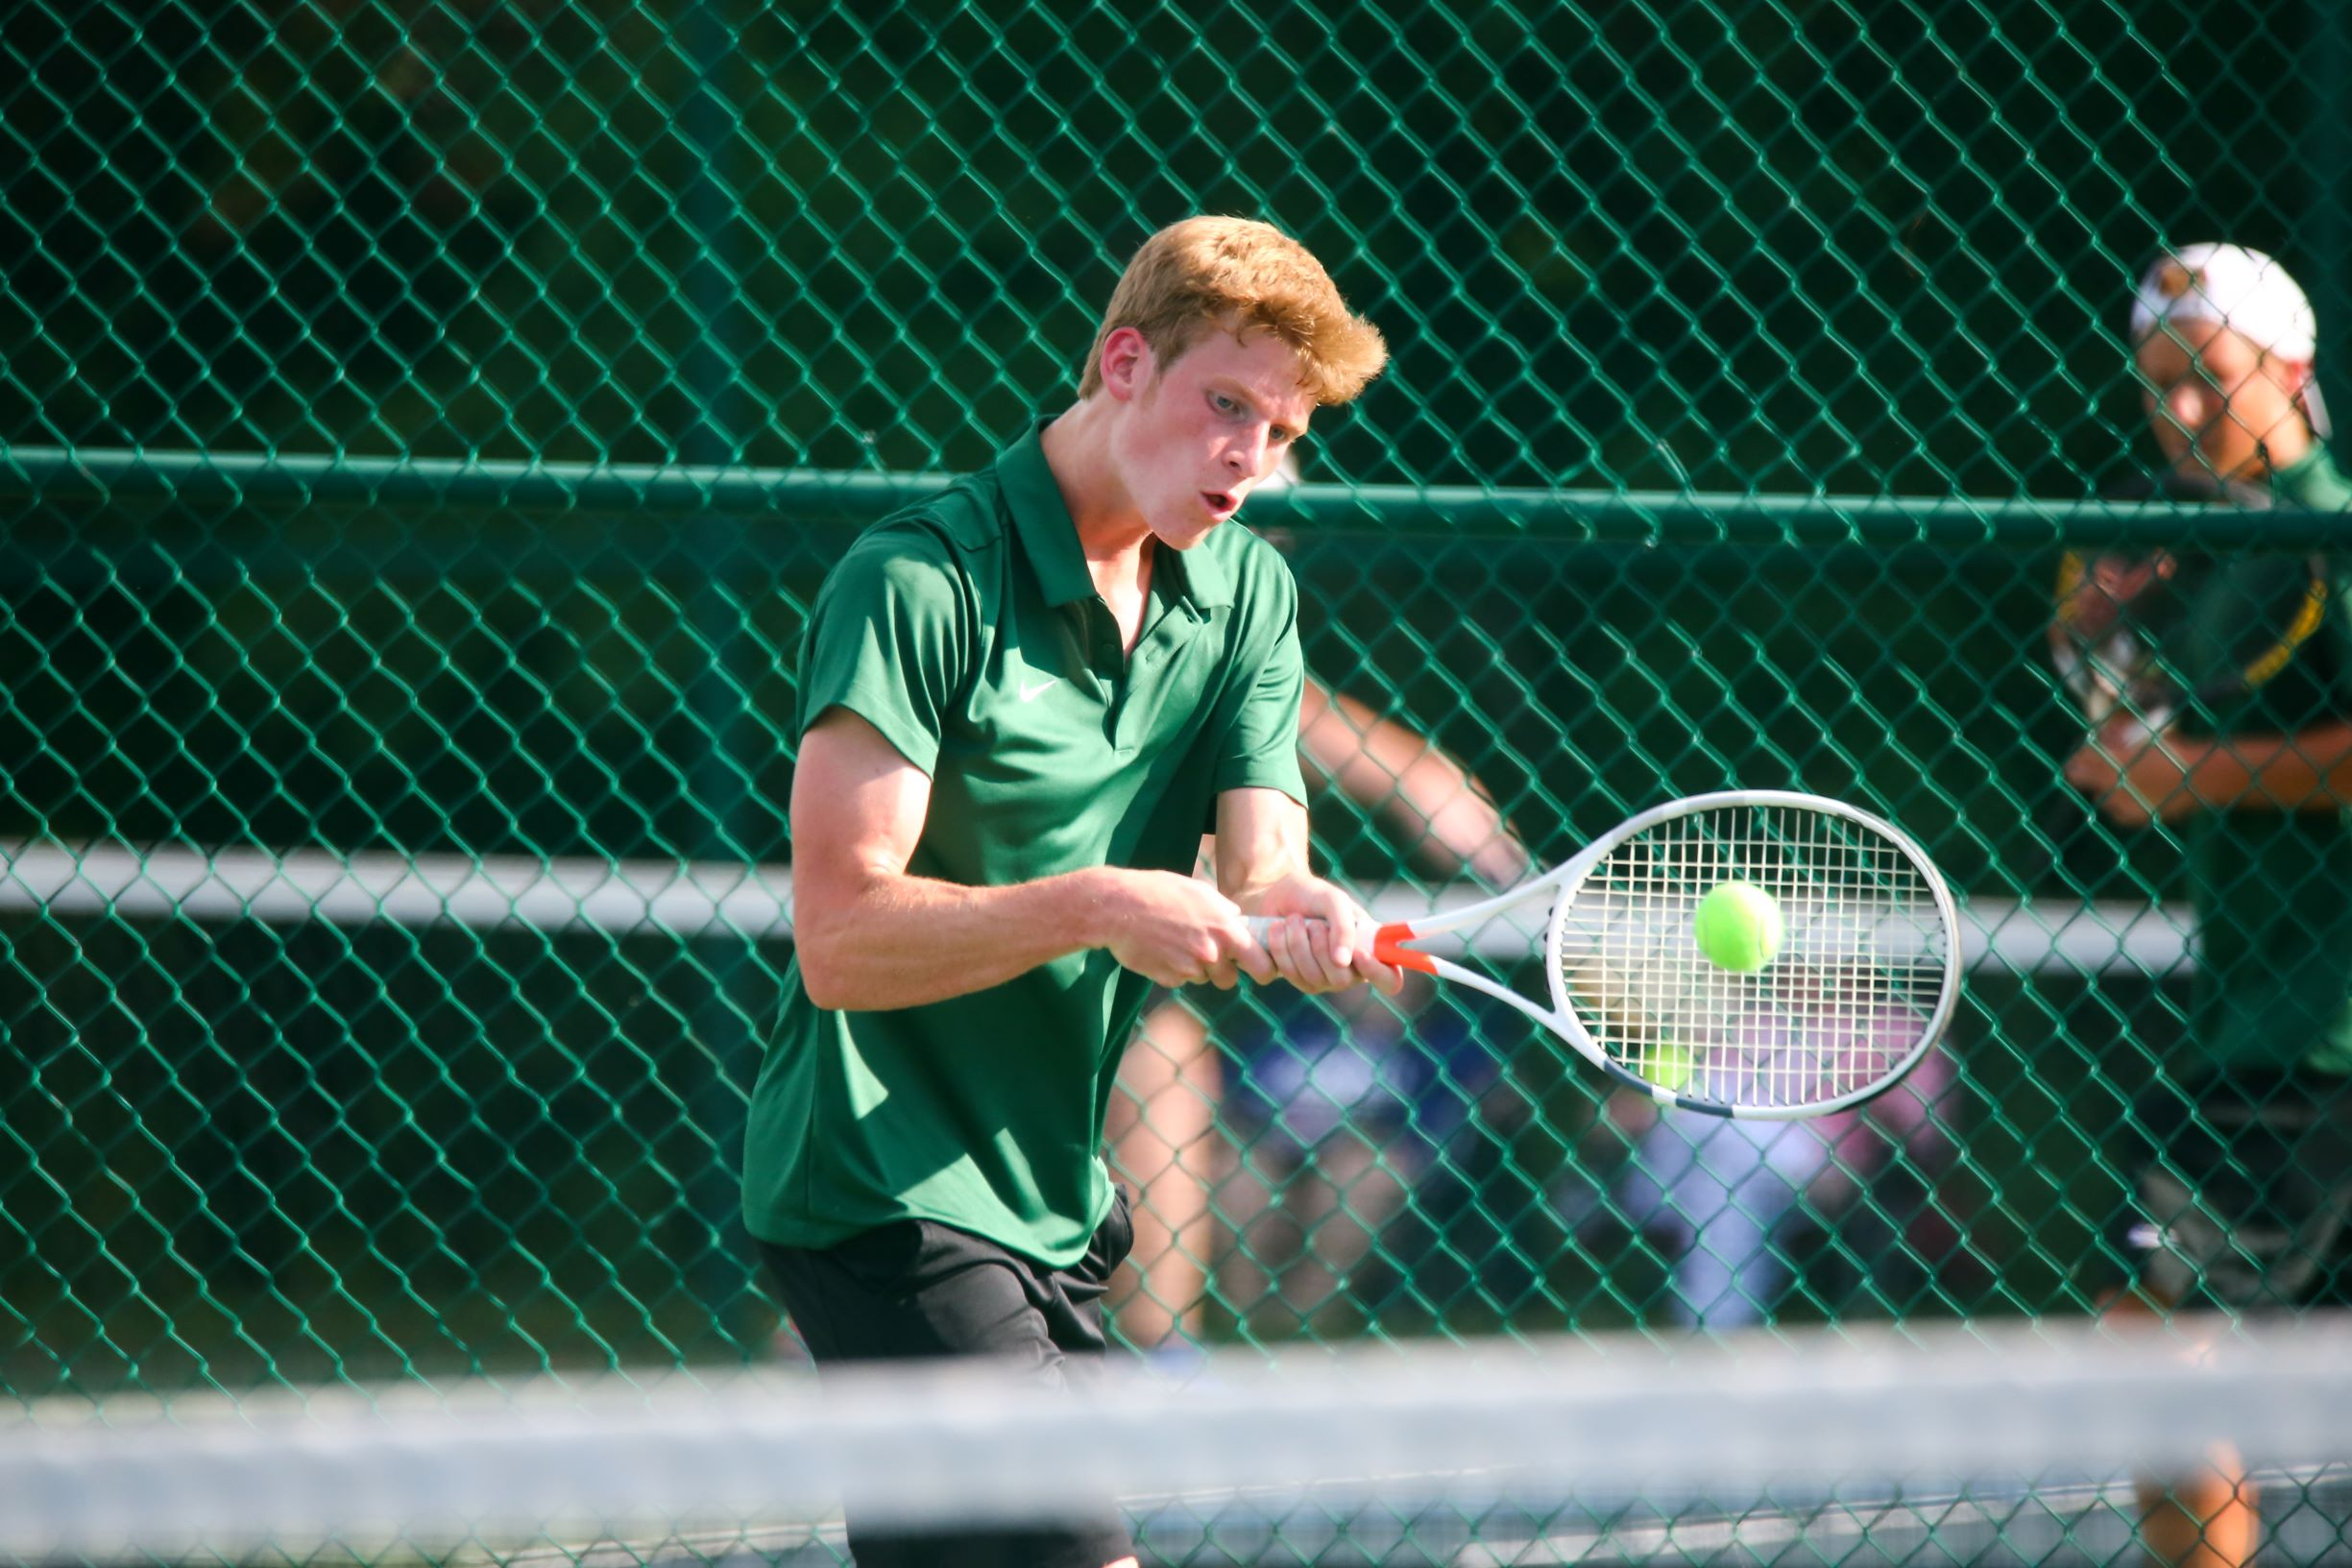 Craig Advances to City Tennis Final, Covenant in Third Place